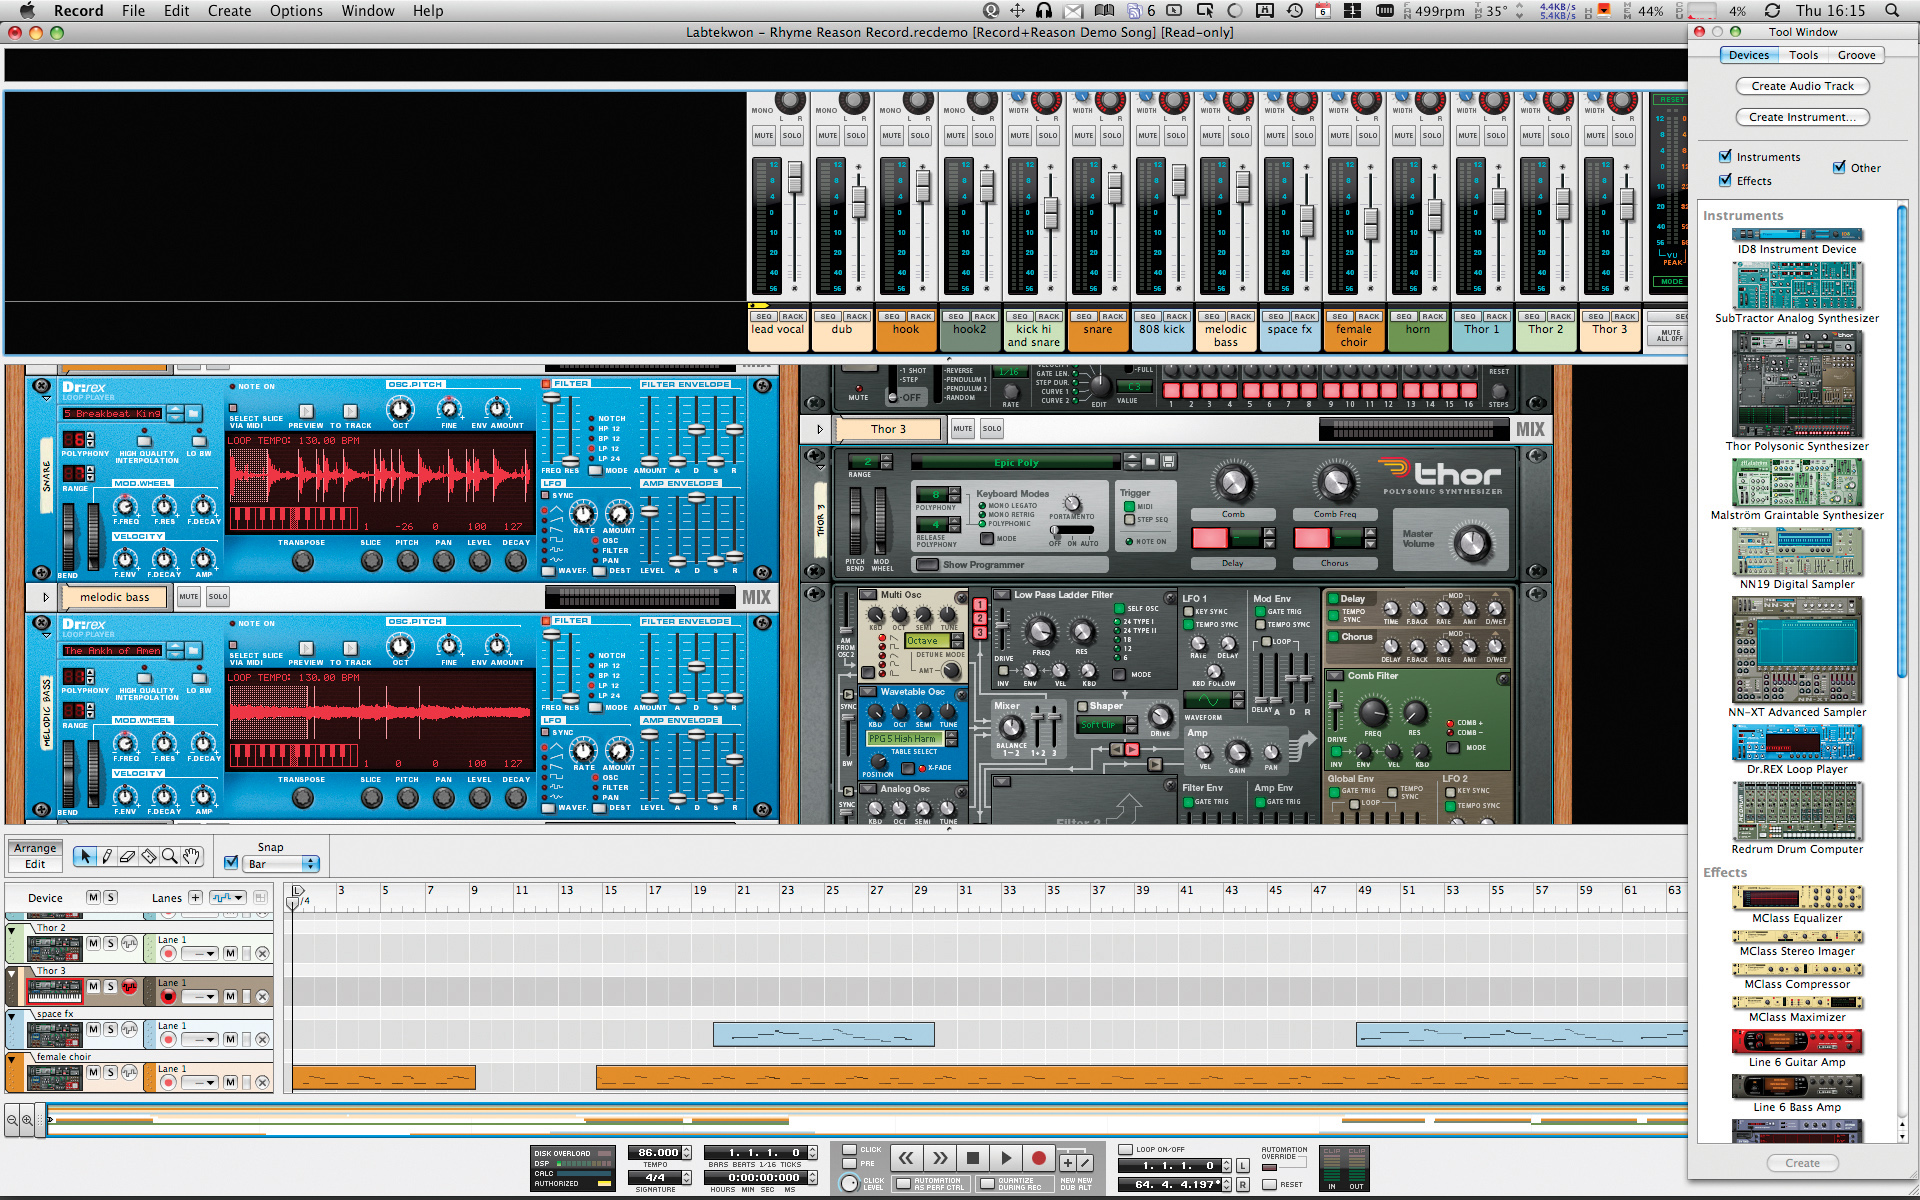 http://mos.musicradar.com/images/Computer%20Music/Issue%20143/propellerhead-record/record-reason.jpg